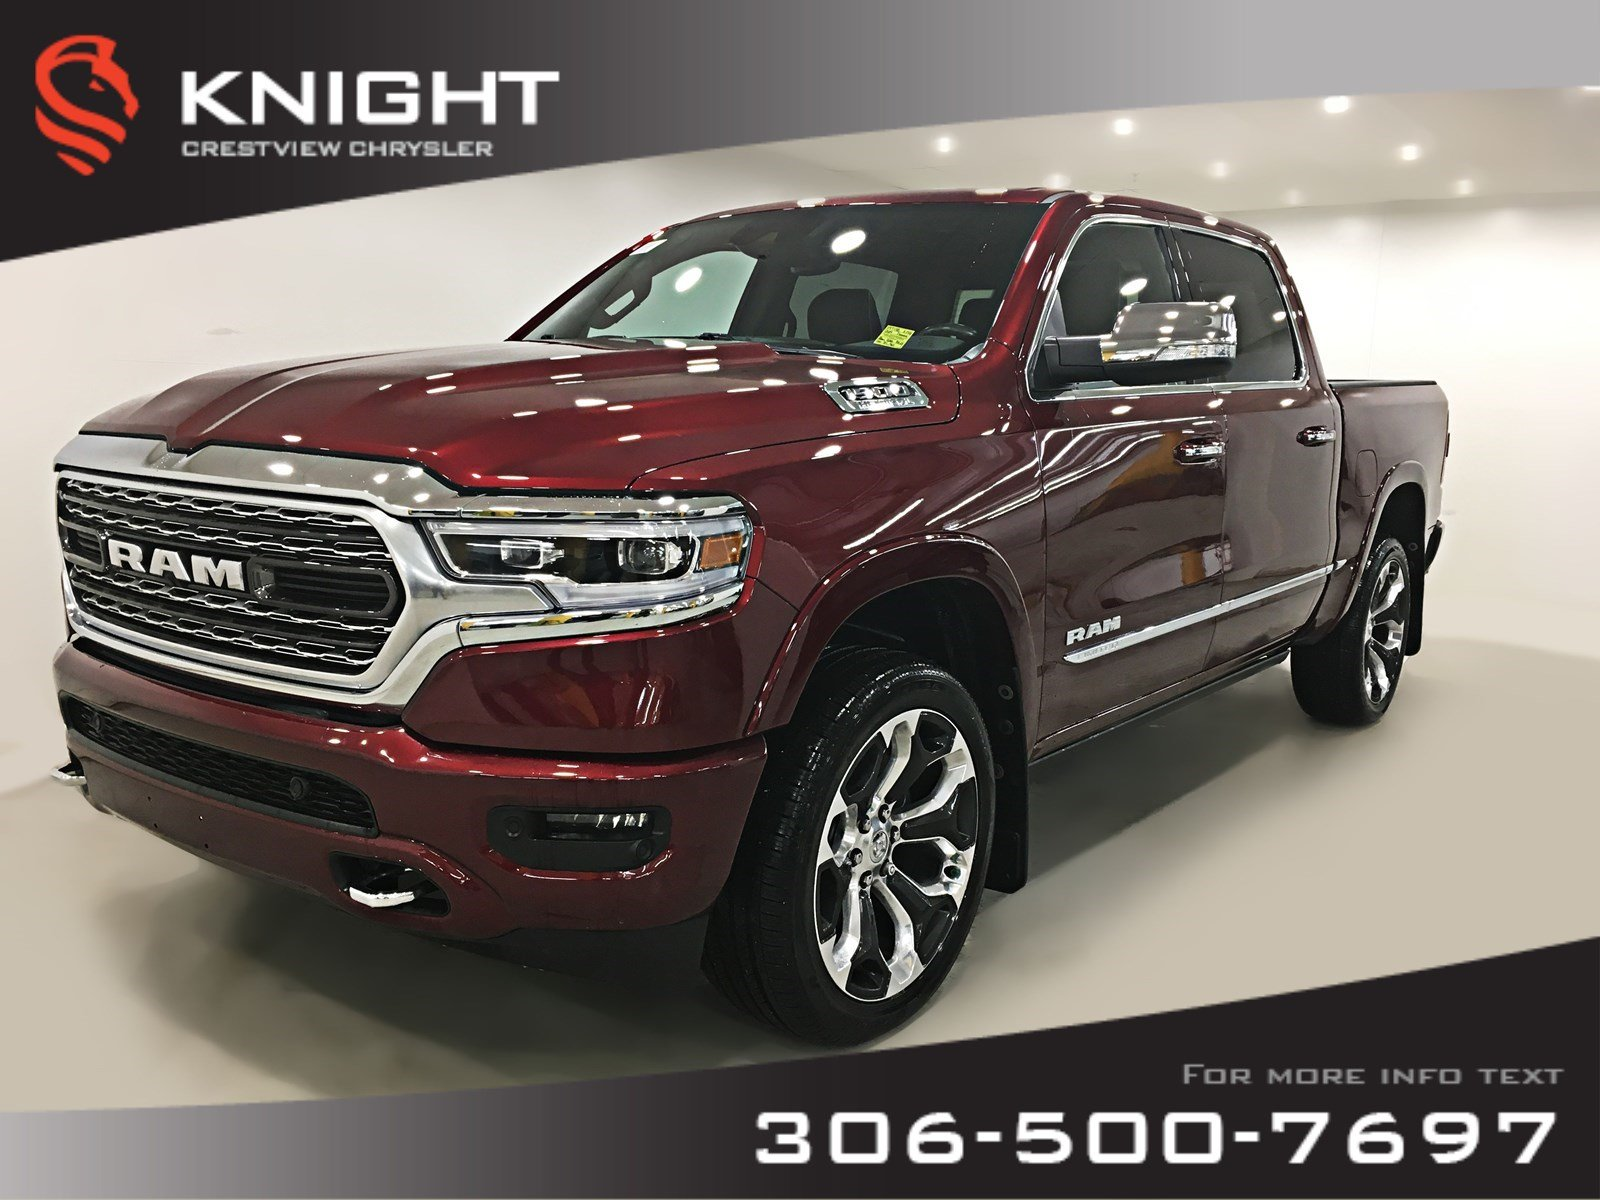 Certified Pre-Owned 2019 Ram 1500 Limited Crew Cab | 12 Touchscreen | Leather | Sunroof | Navigation